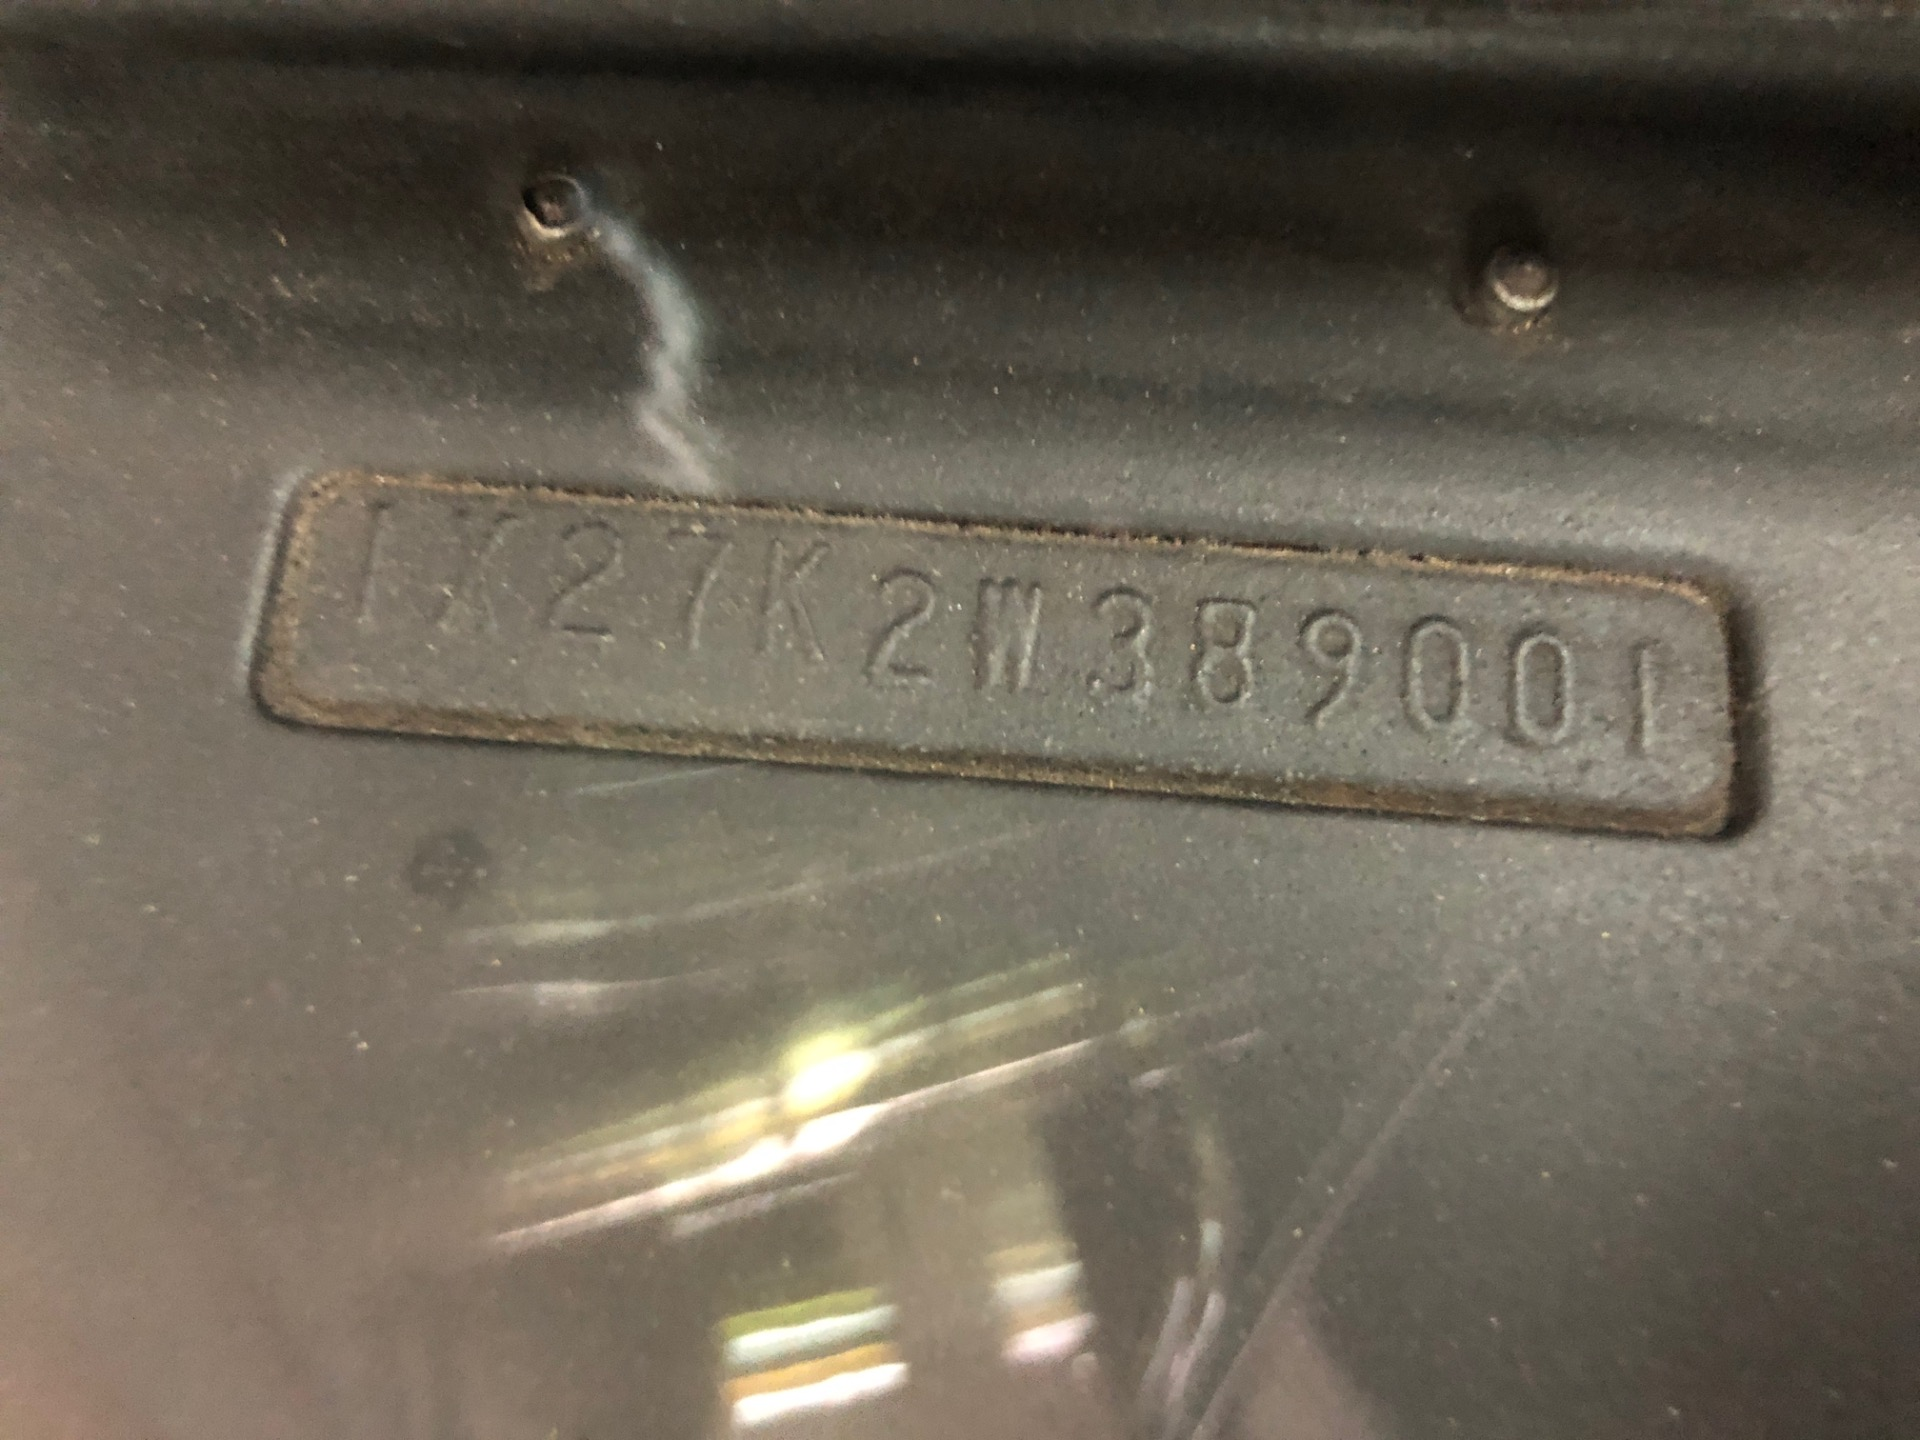 Used 1972 Chevrolet Nova -NEW ARRIVAL-CLEAN AND SOLID CLASSIC-COME TAKE A LOOK- | Mundelein, IL